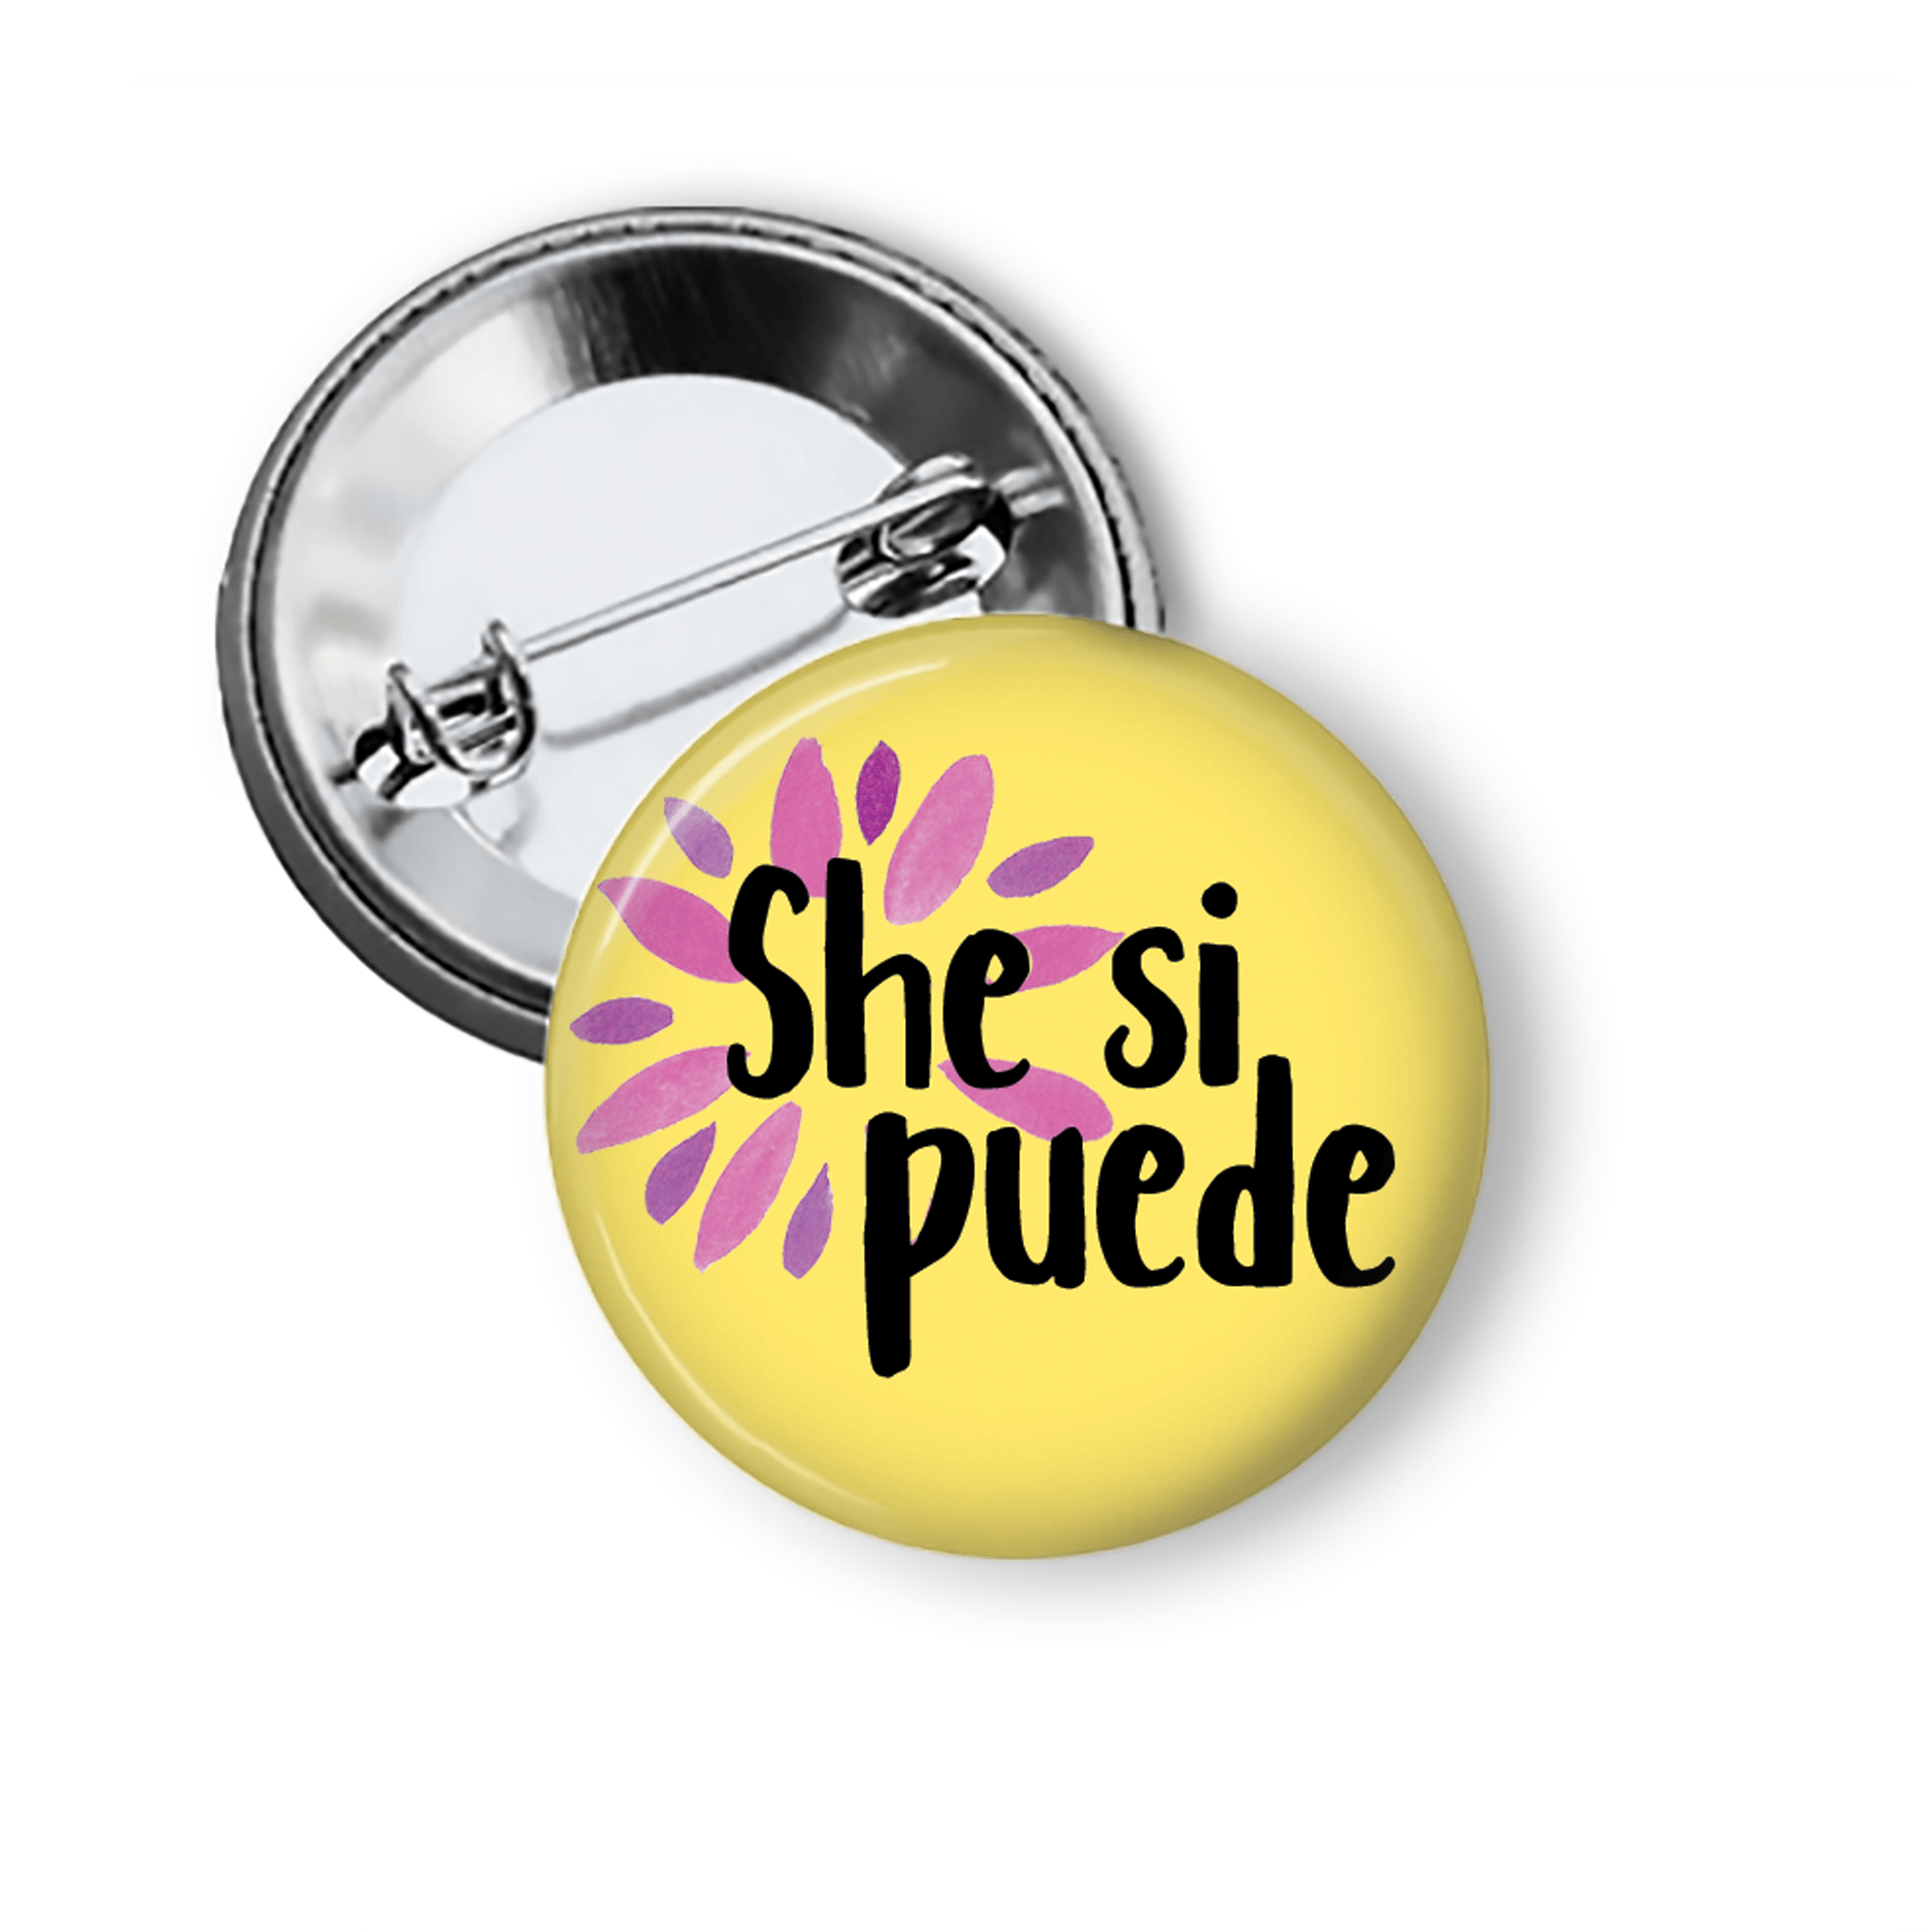 She Si Puede Pinback Button Pins Badges Flair Pins Buttons For the People